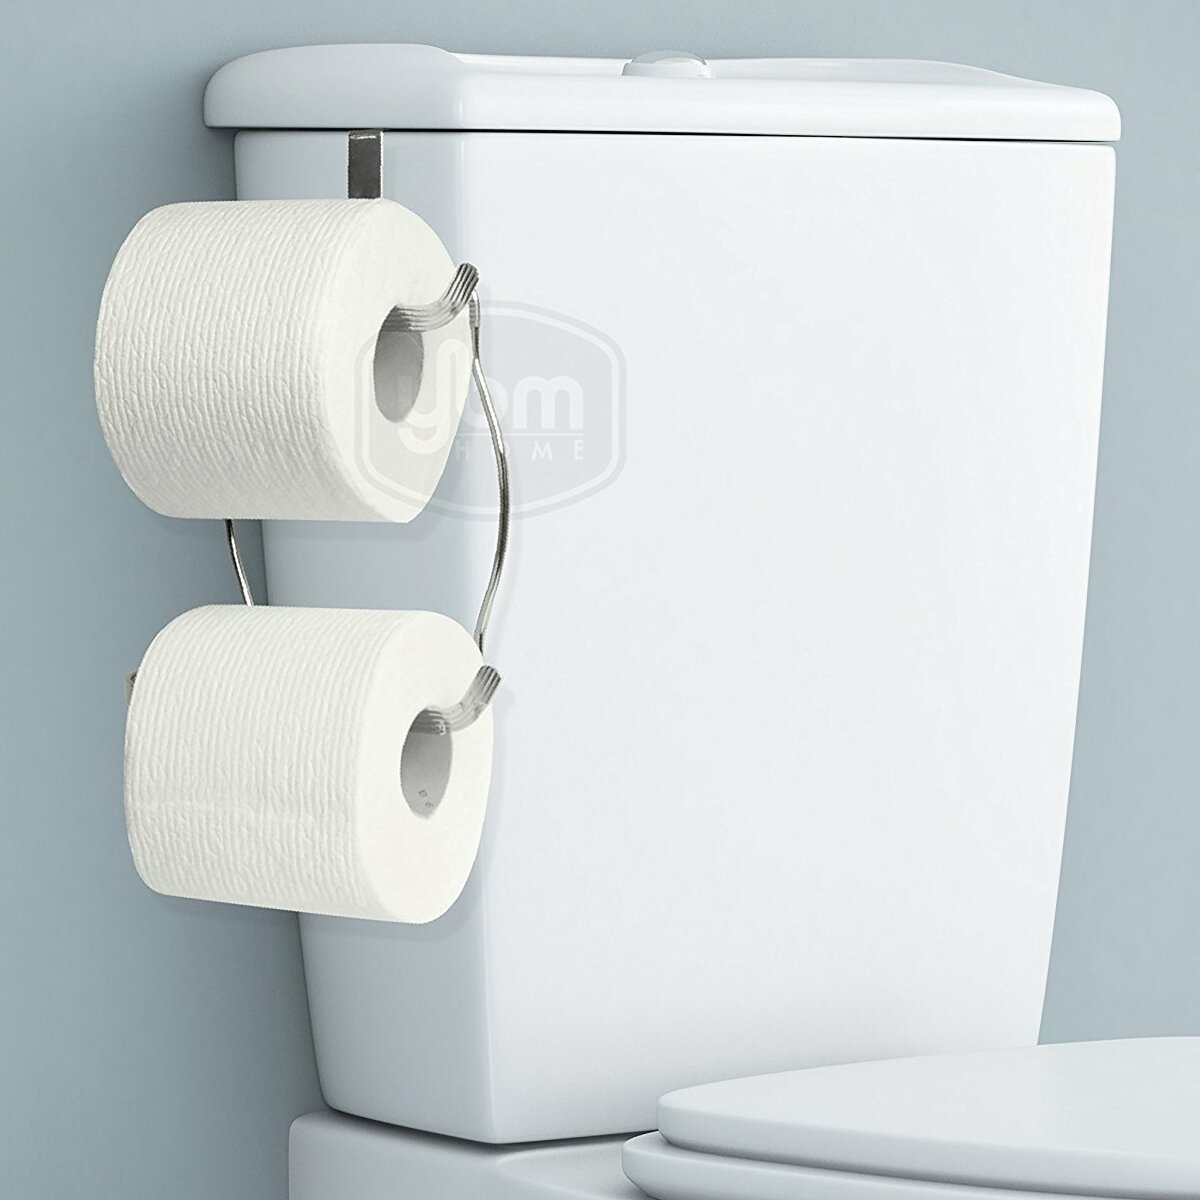 Convenient Single Roll Toilet Paper Tissue Holder Hanger Hangs Over The Tank